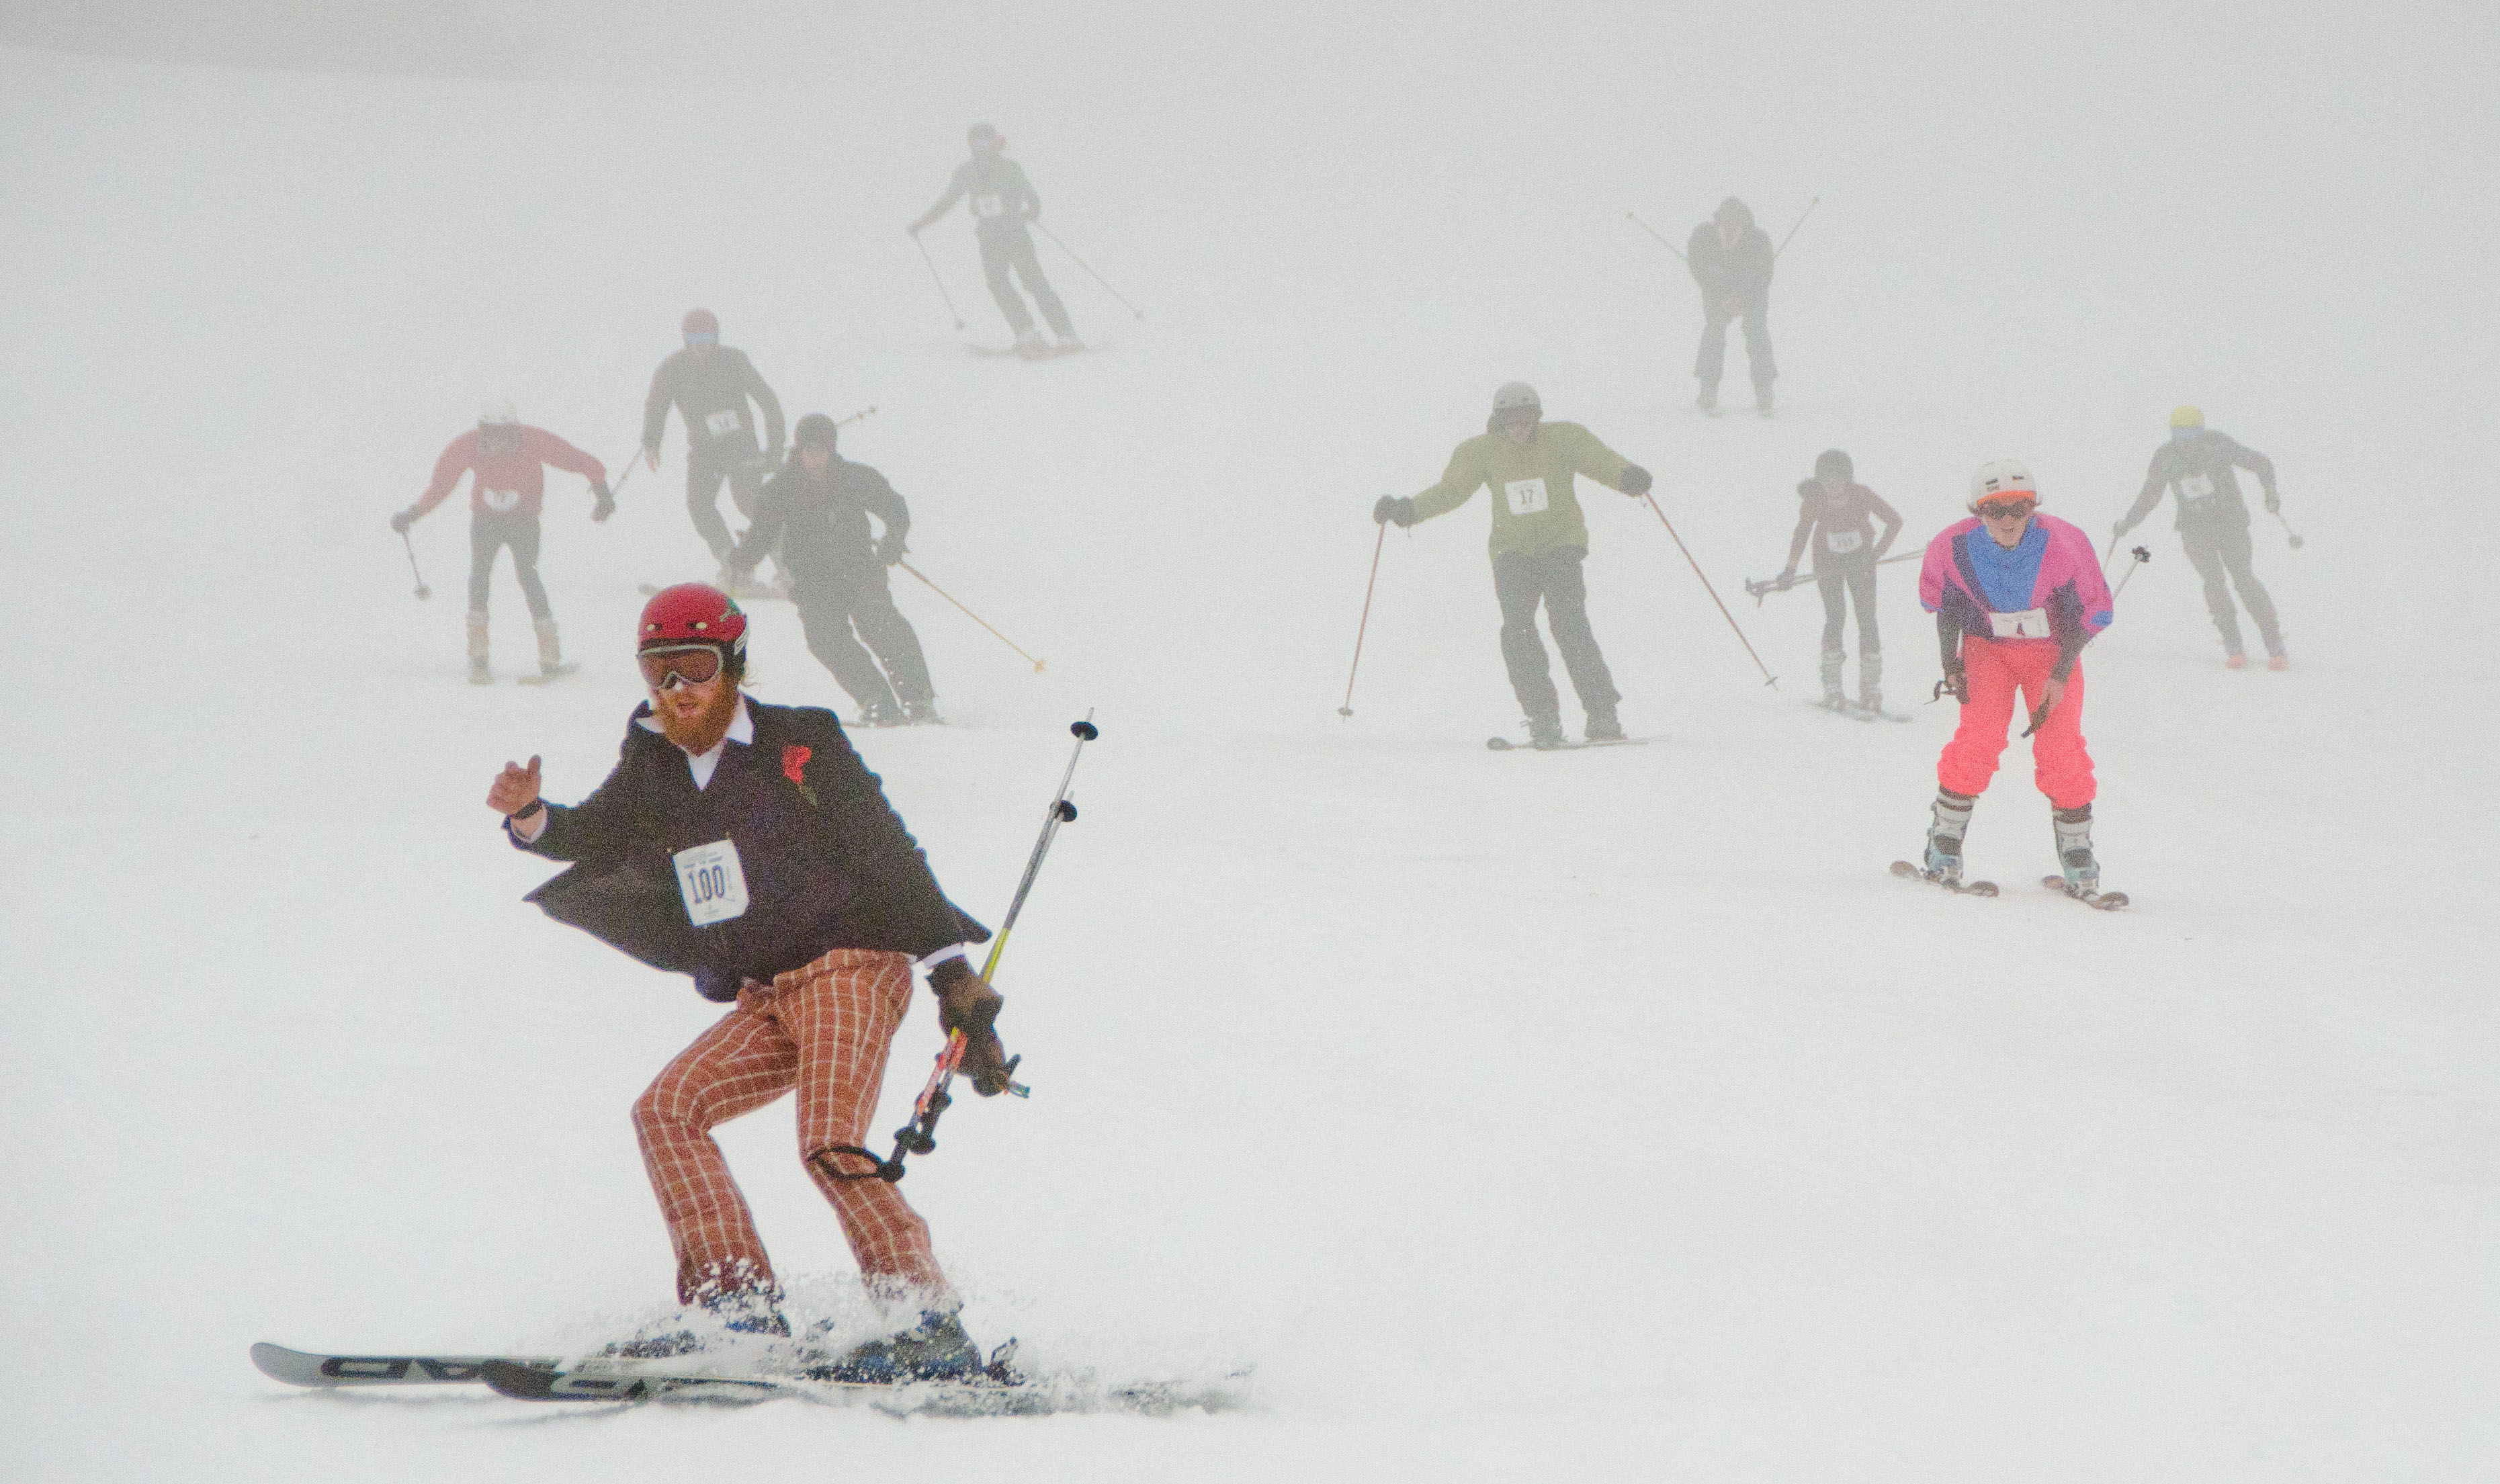 In Photos Royal Lepage Snow To Surf My Comox Valley Now Relay Race Basic Rules Downhill Skiers Make Their Way Down A Mount Washington Ski Run During The Start Of Throughout On April 29 2018